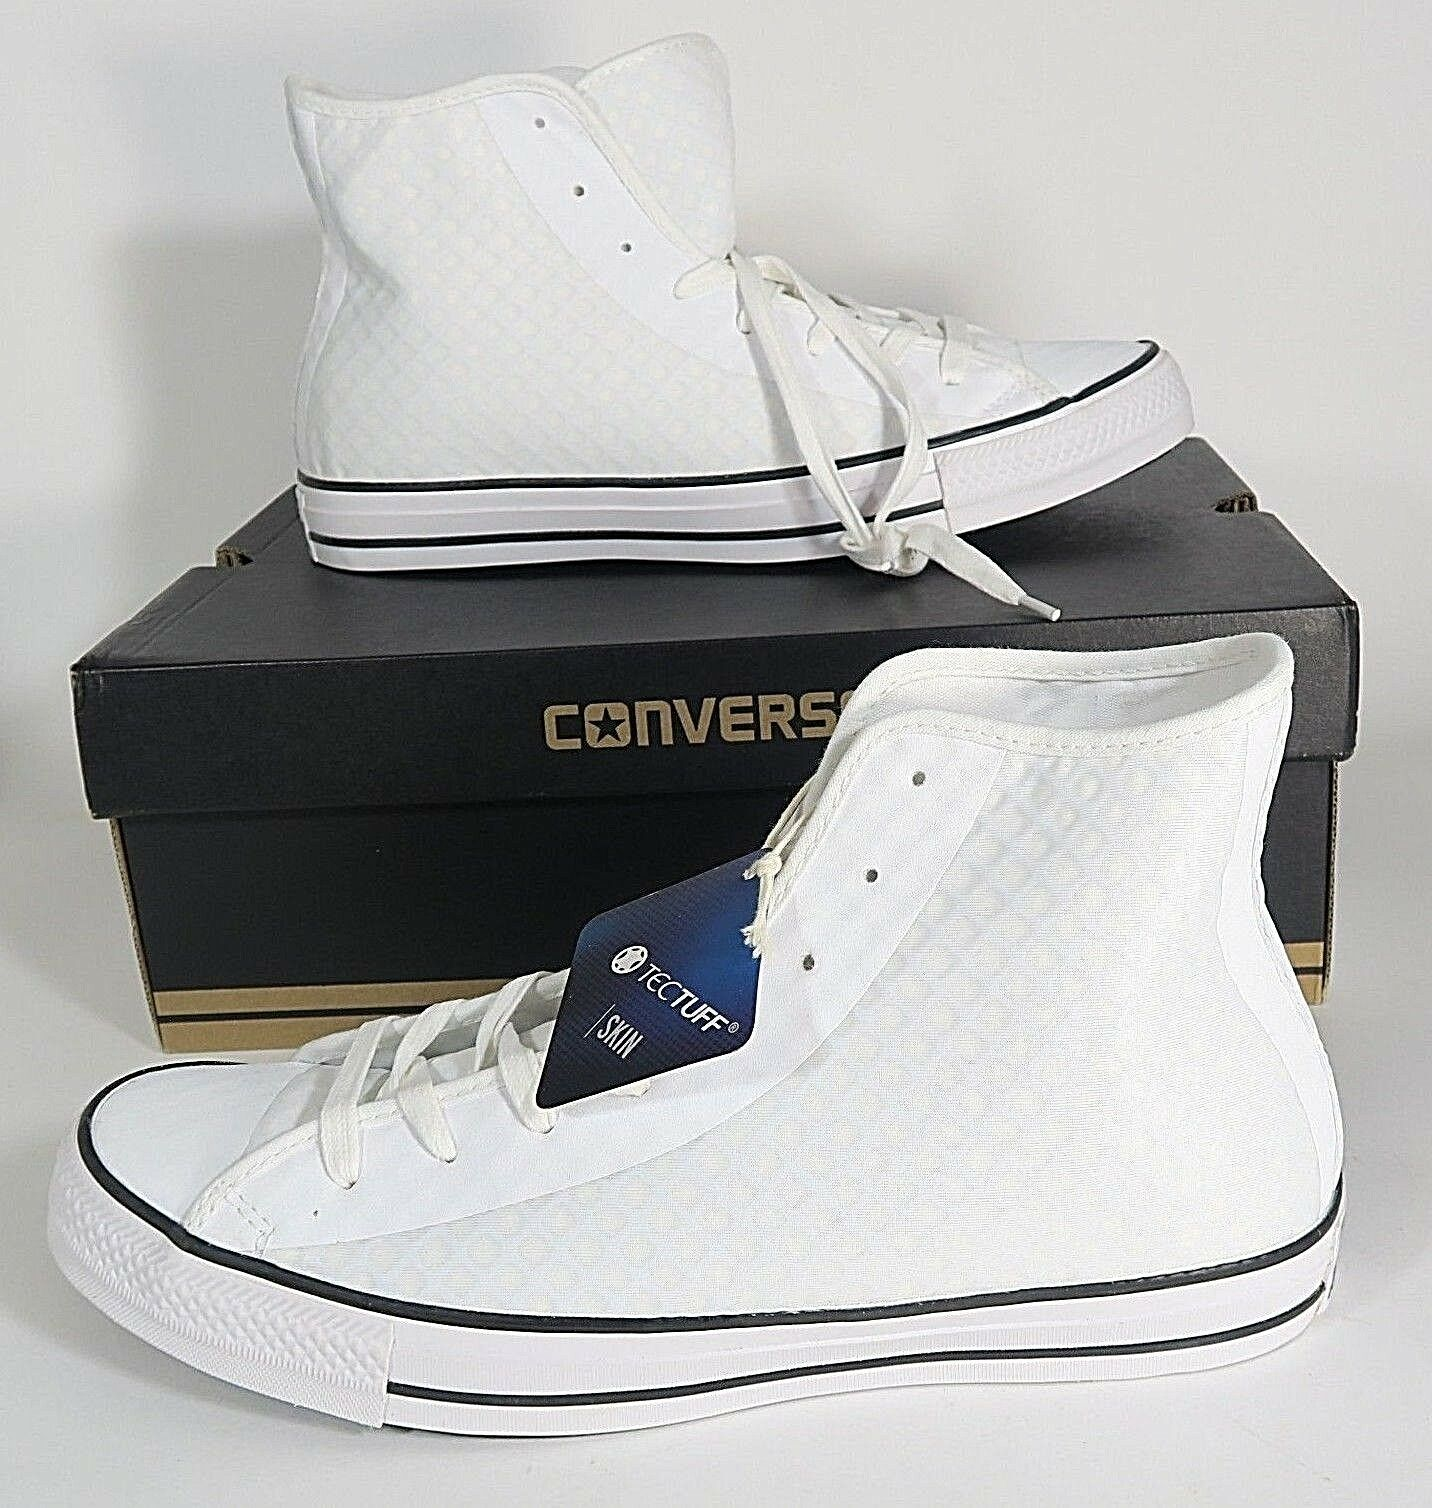 3f44137015bc Converse All Star Hi Fuse Shoes White Black Tectuff 154906C Mens Size 9.5 1  of 8Only 1 available ...